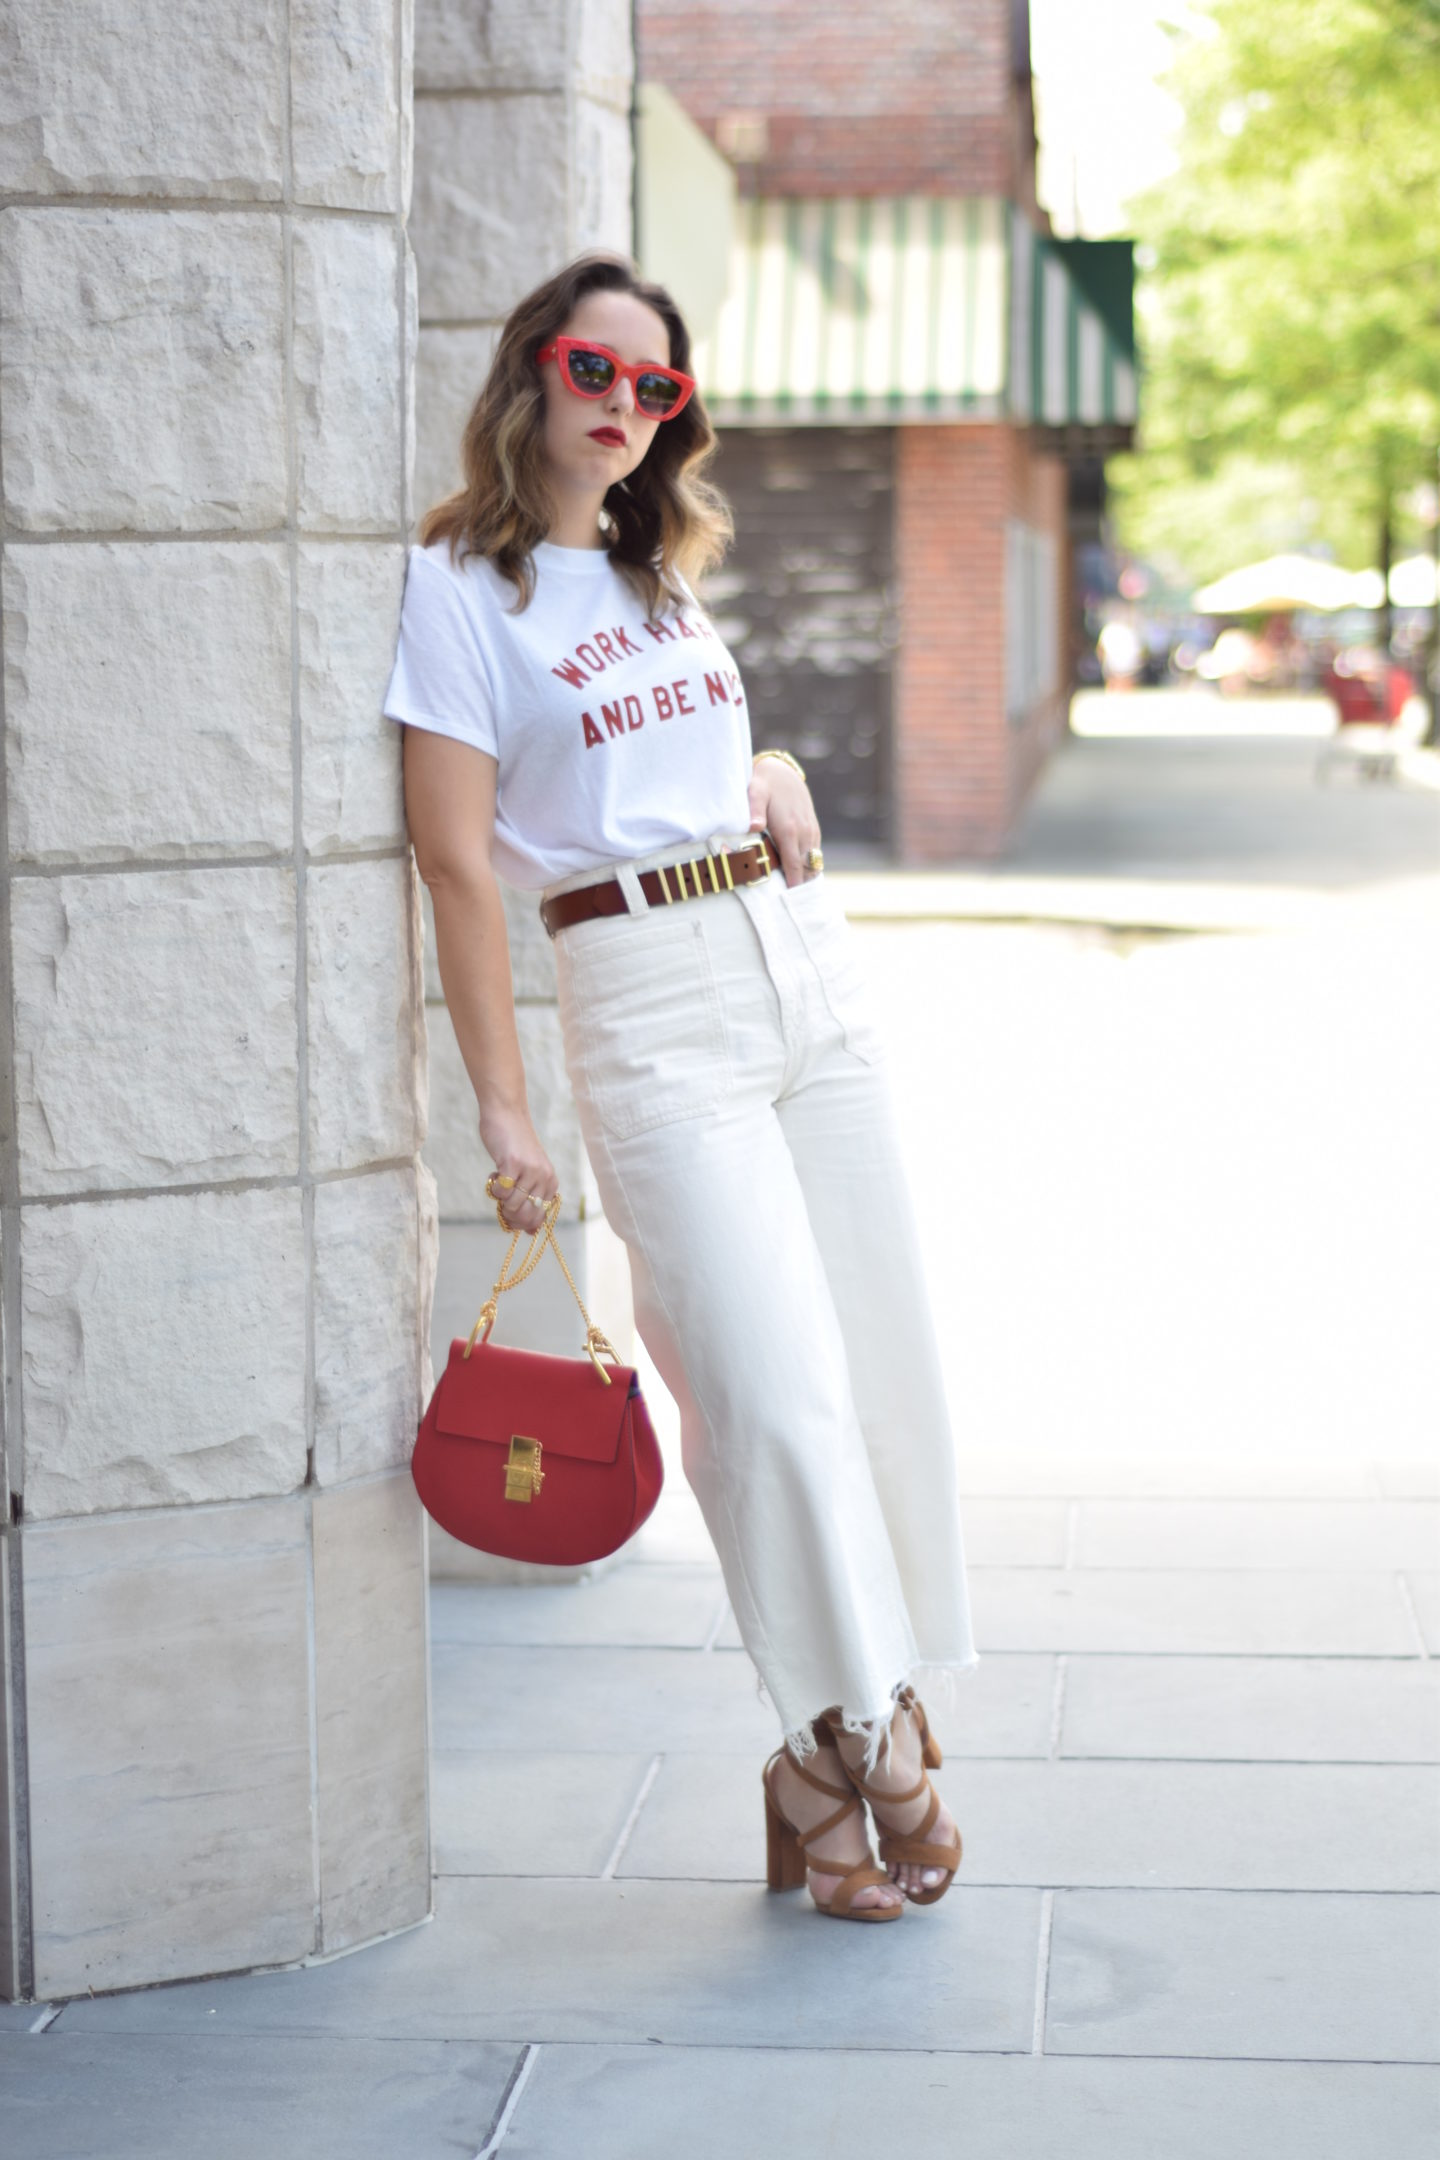 style-graphic tee-street-outfit